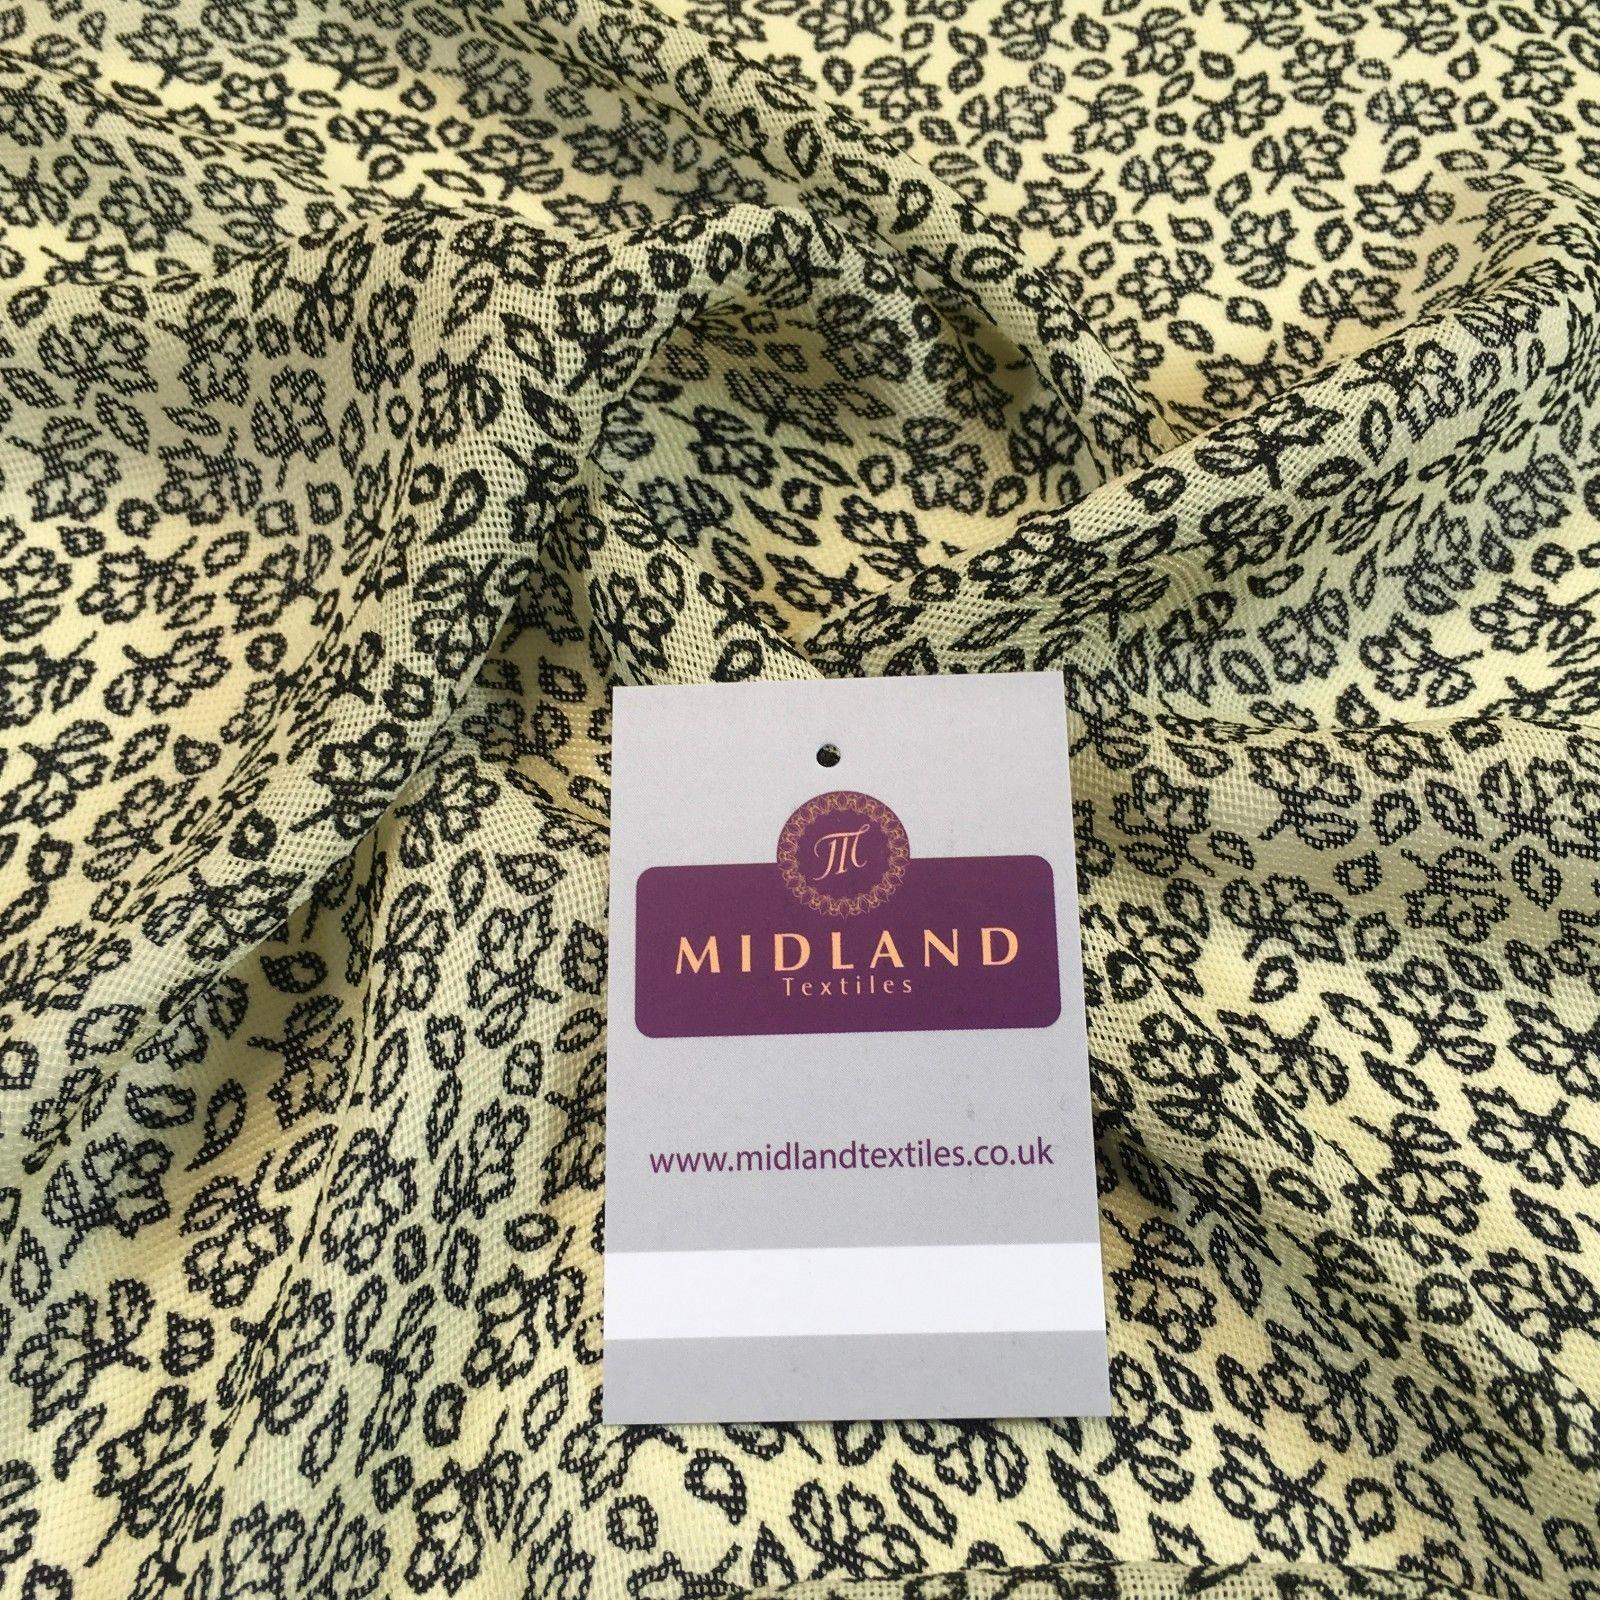 "Black Cream Floral textured moss crepe dress fabric 44"" M145-64 Mtex - Midland Textiles & Fabric"